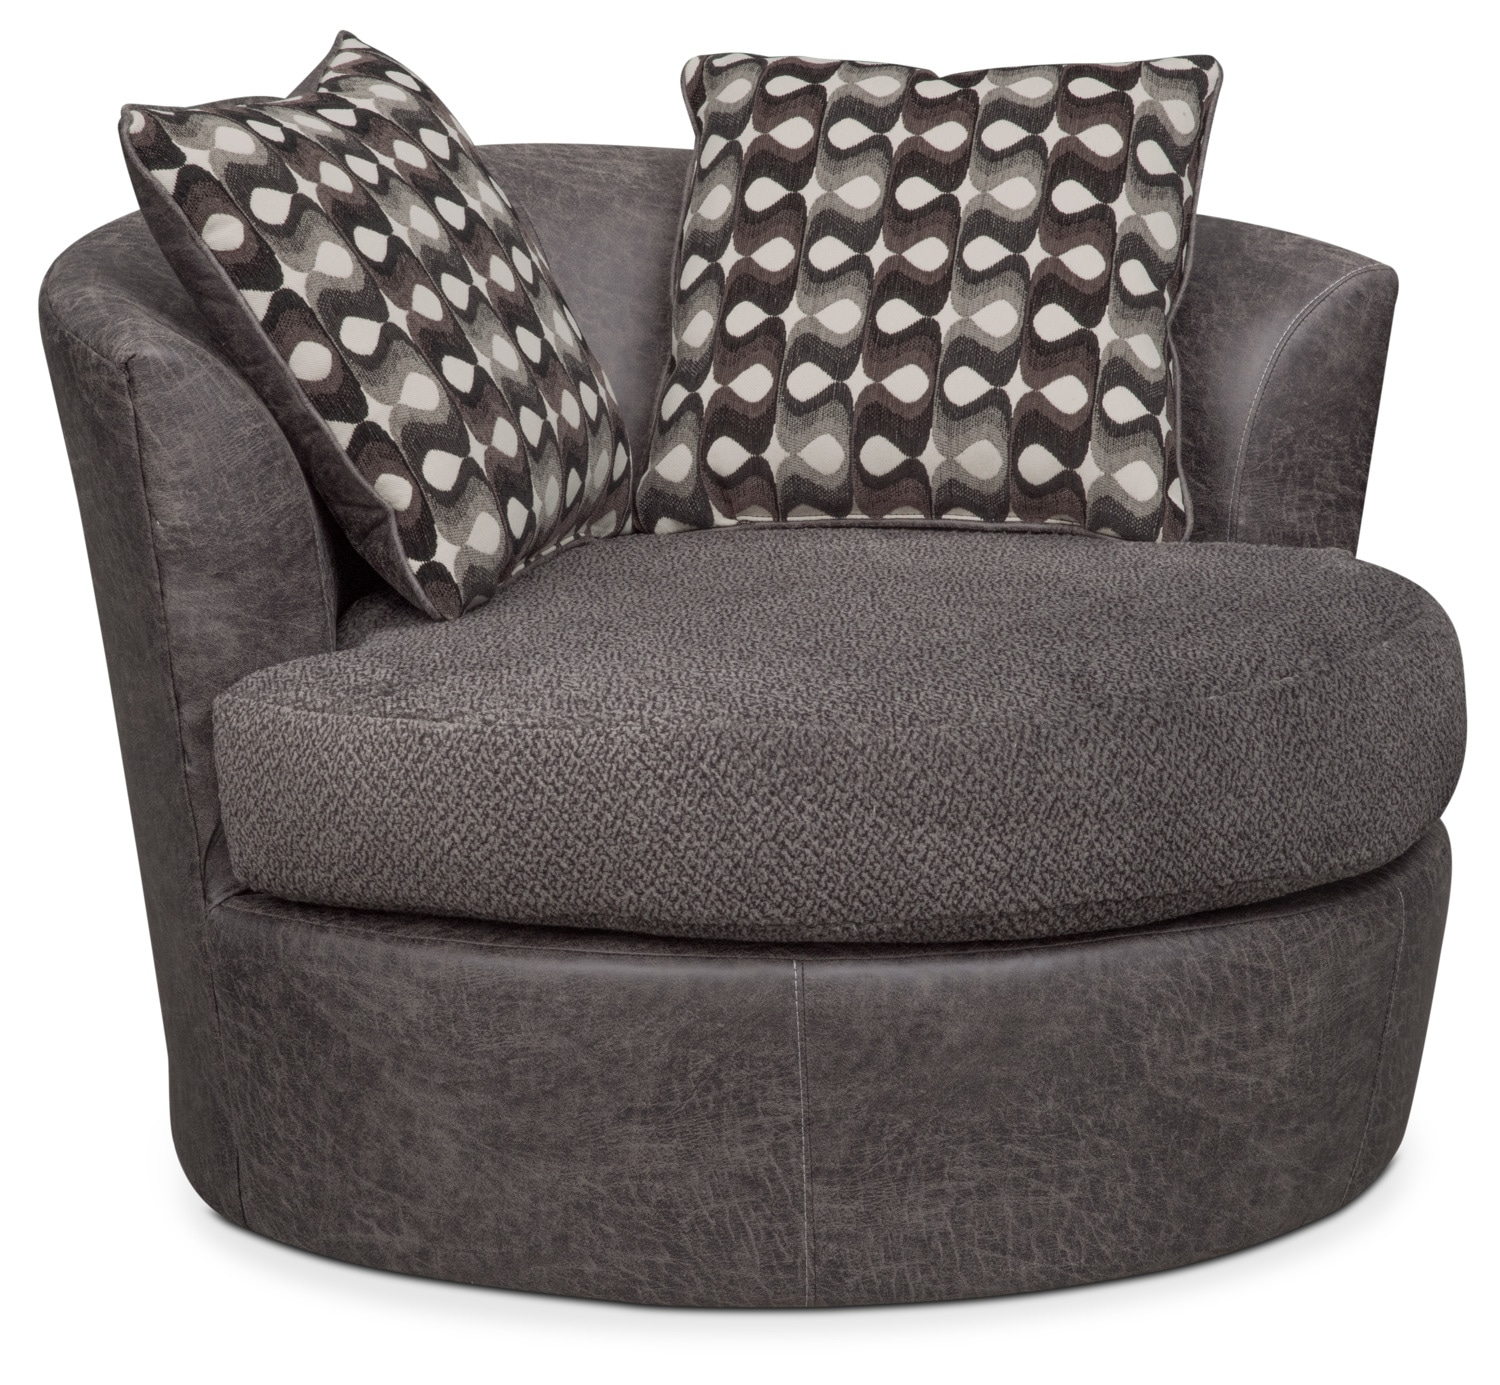 Brando Swivel Swivel Chair | Value City Furniture And Mattresses Regarding Loft Smokey Swivel Accent Chairs (View 4 of 25)